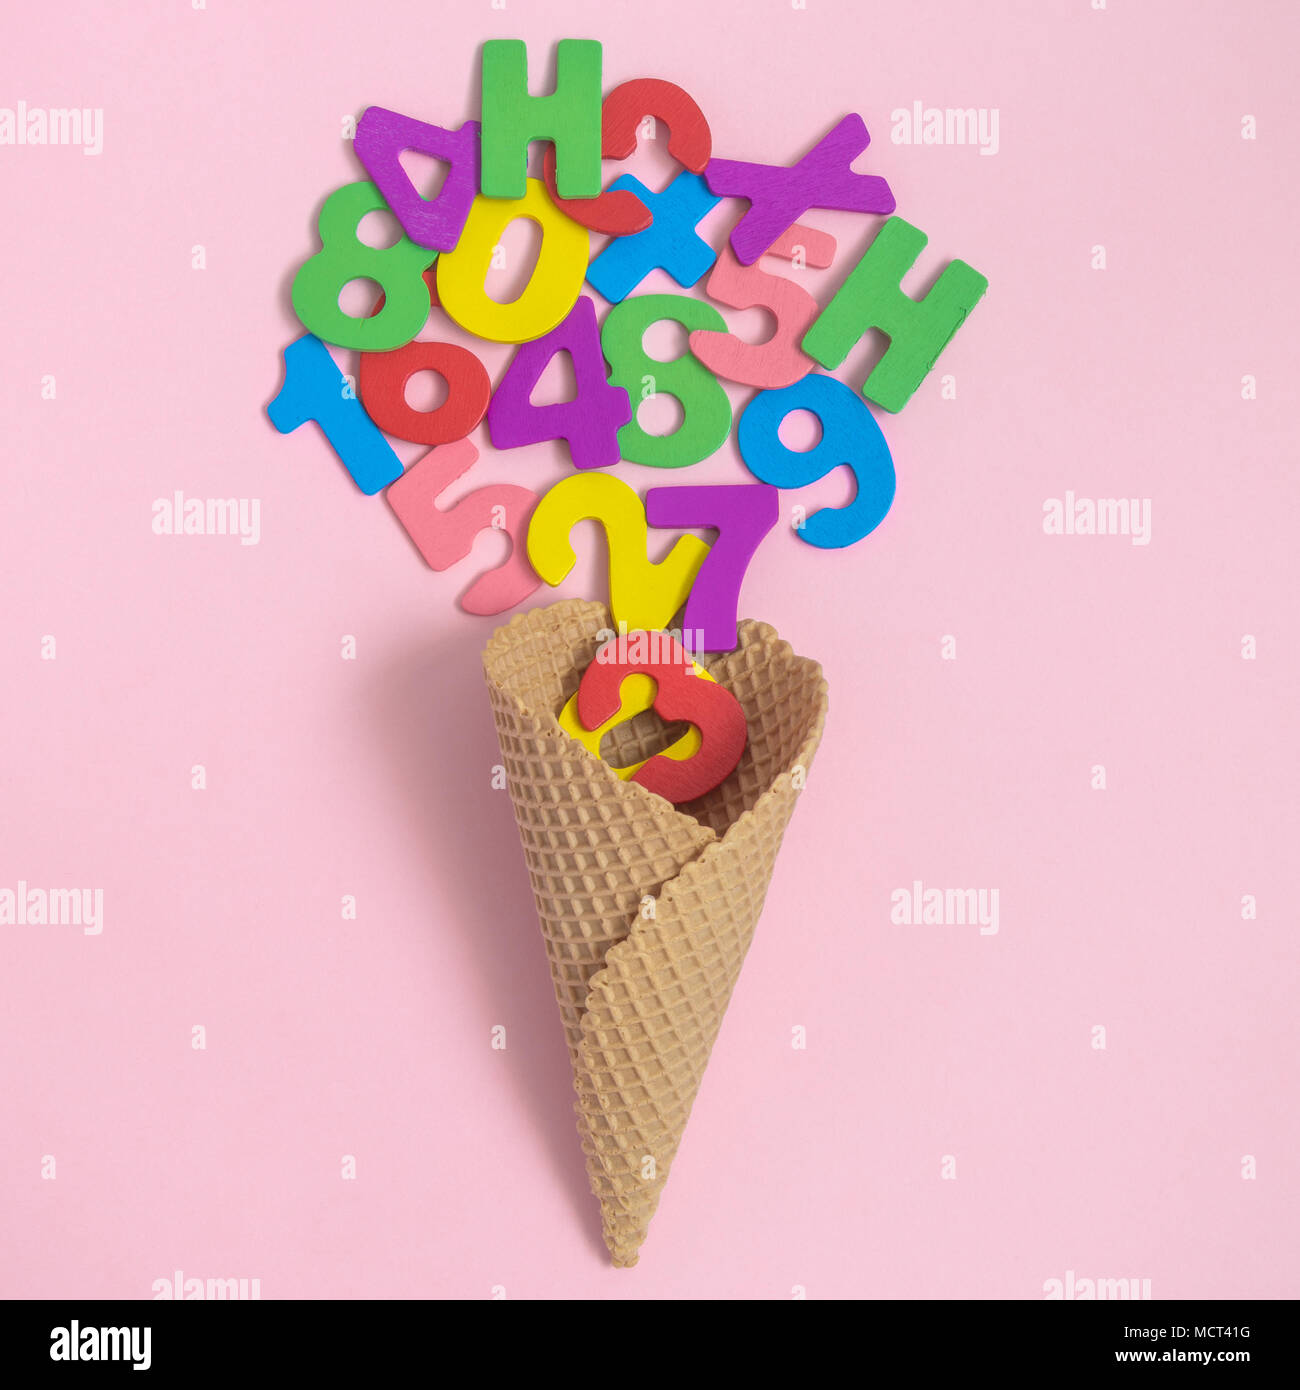 Ice cream cone with colorful wooden numbers and letters on pastel ...